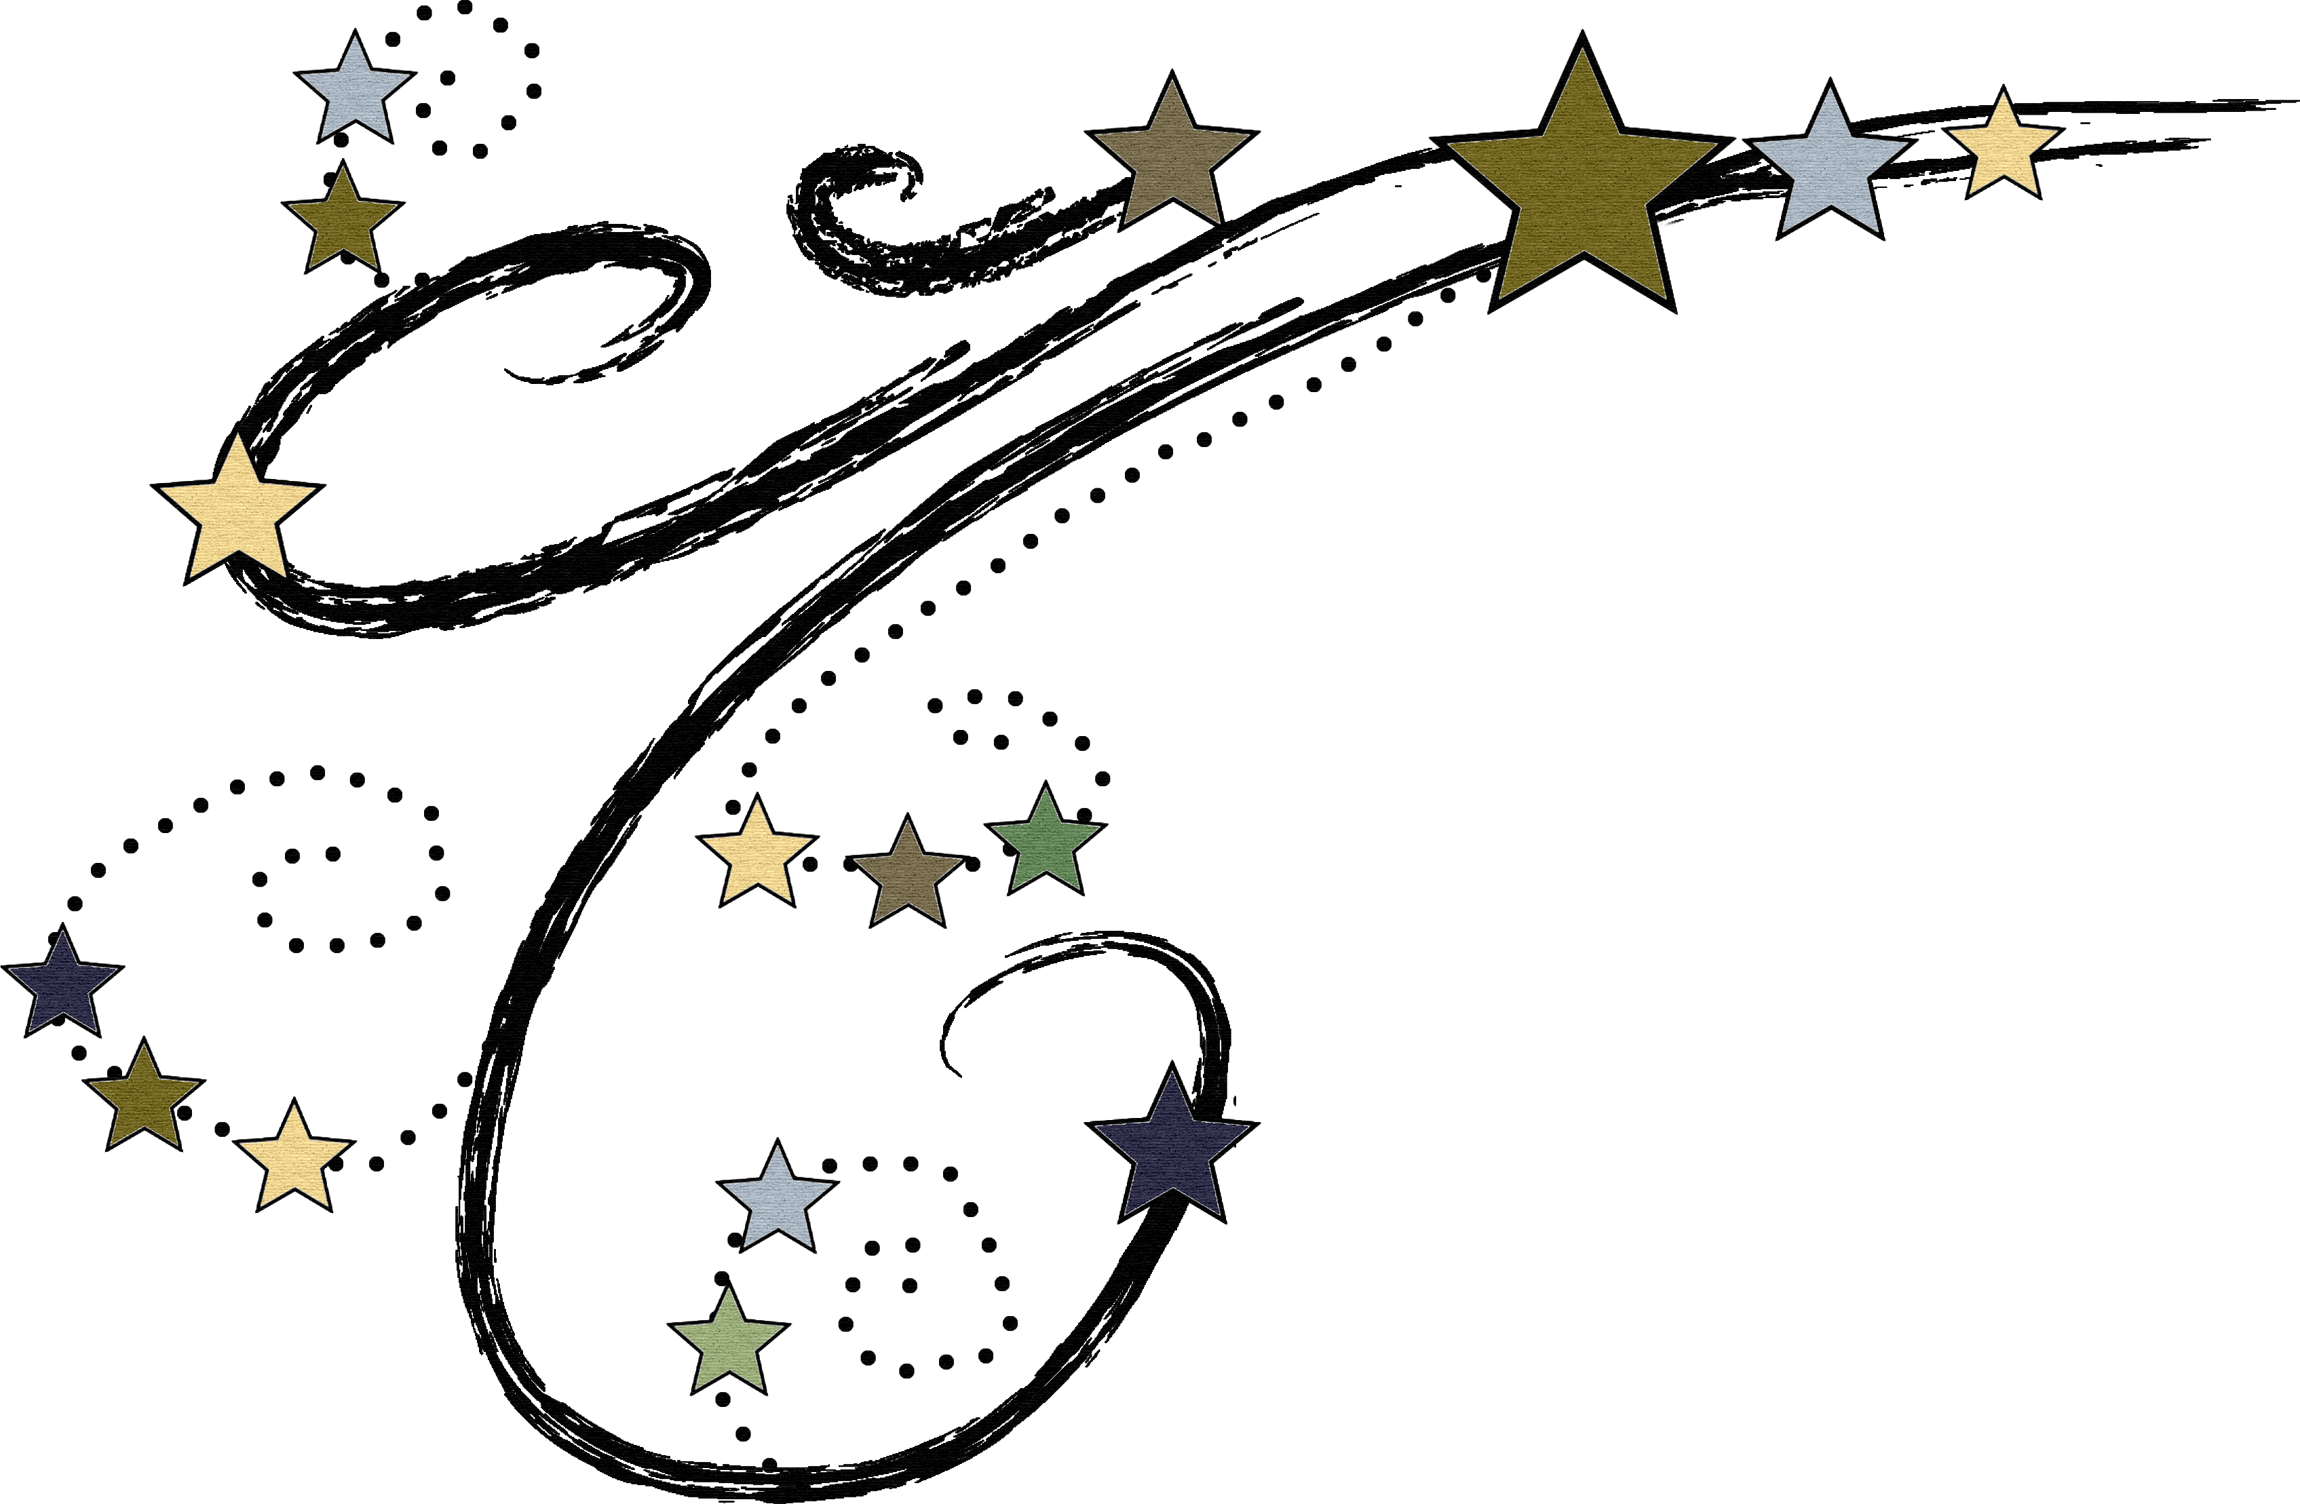 Falling Stars clipart all star On High Cliparts Quality Clipart